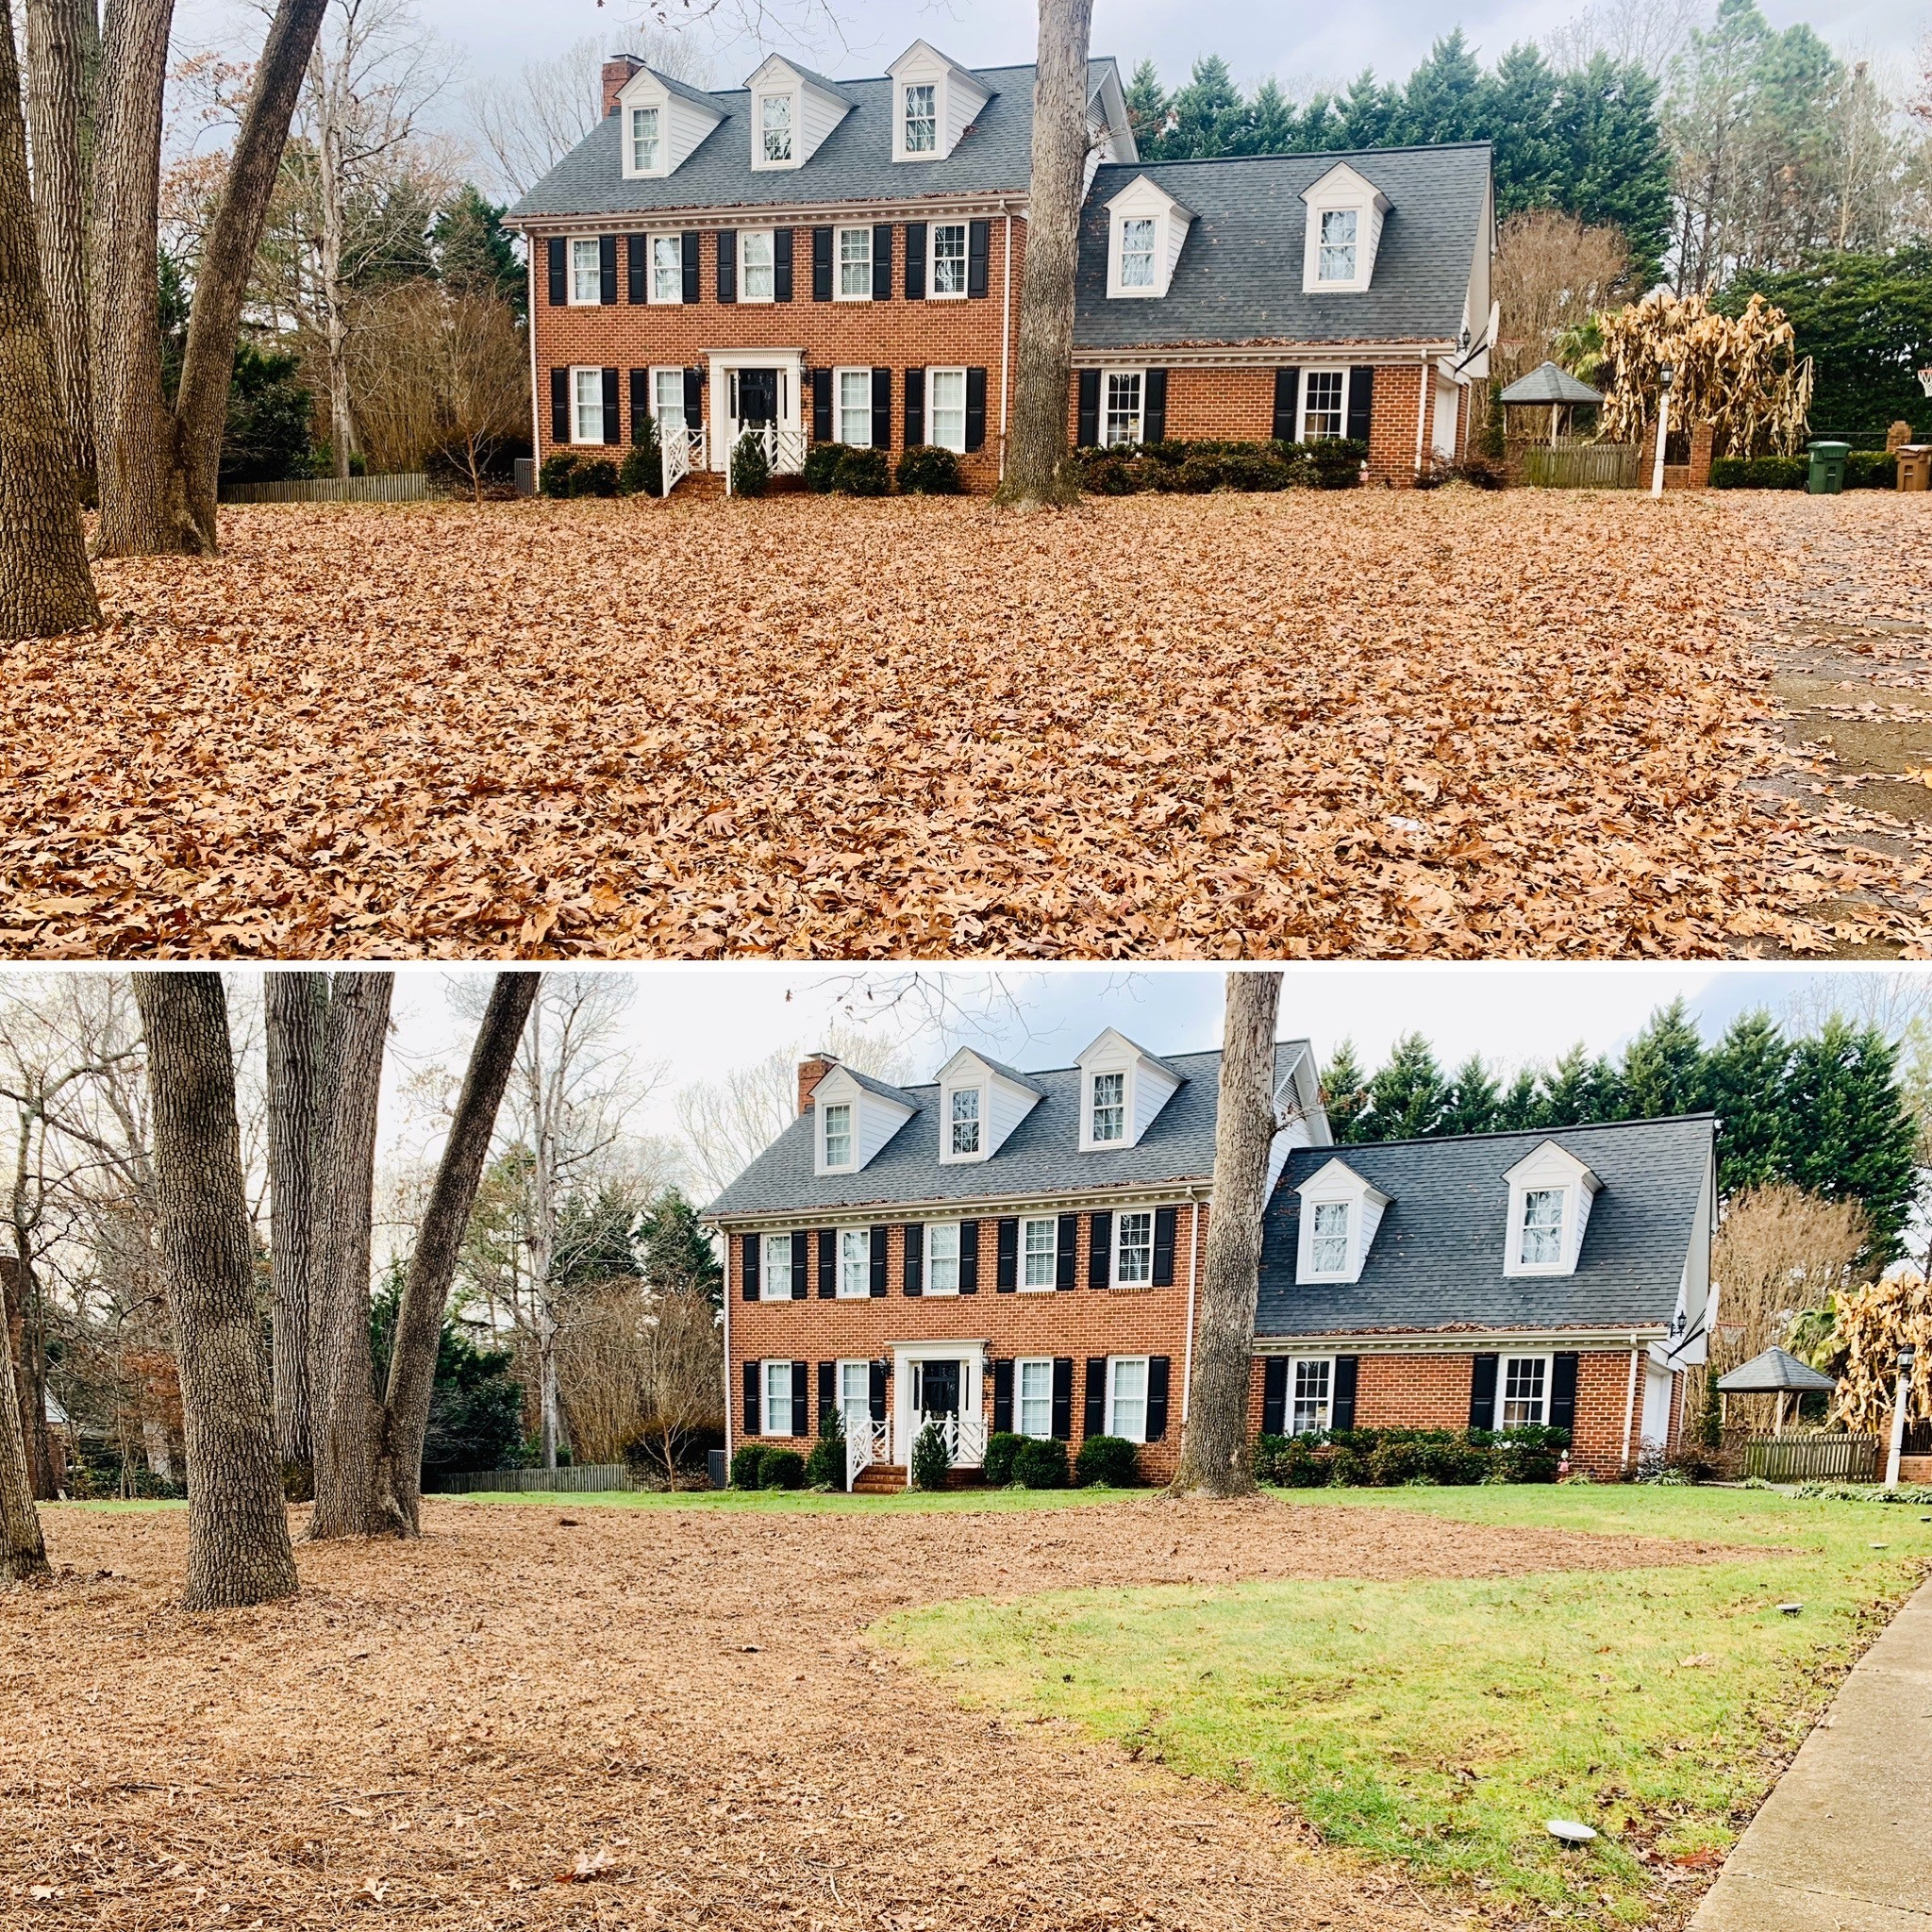 Backyard at a home in  Morrisville, NC after fall clean up service.